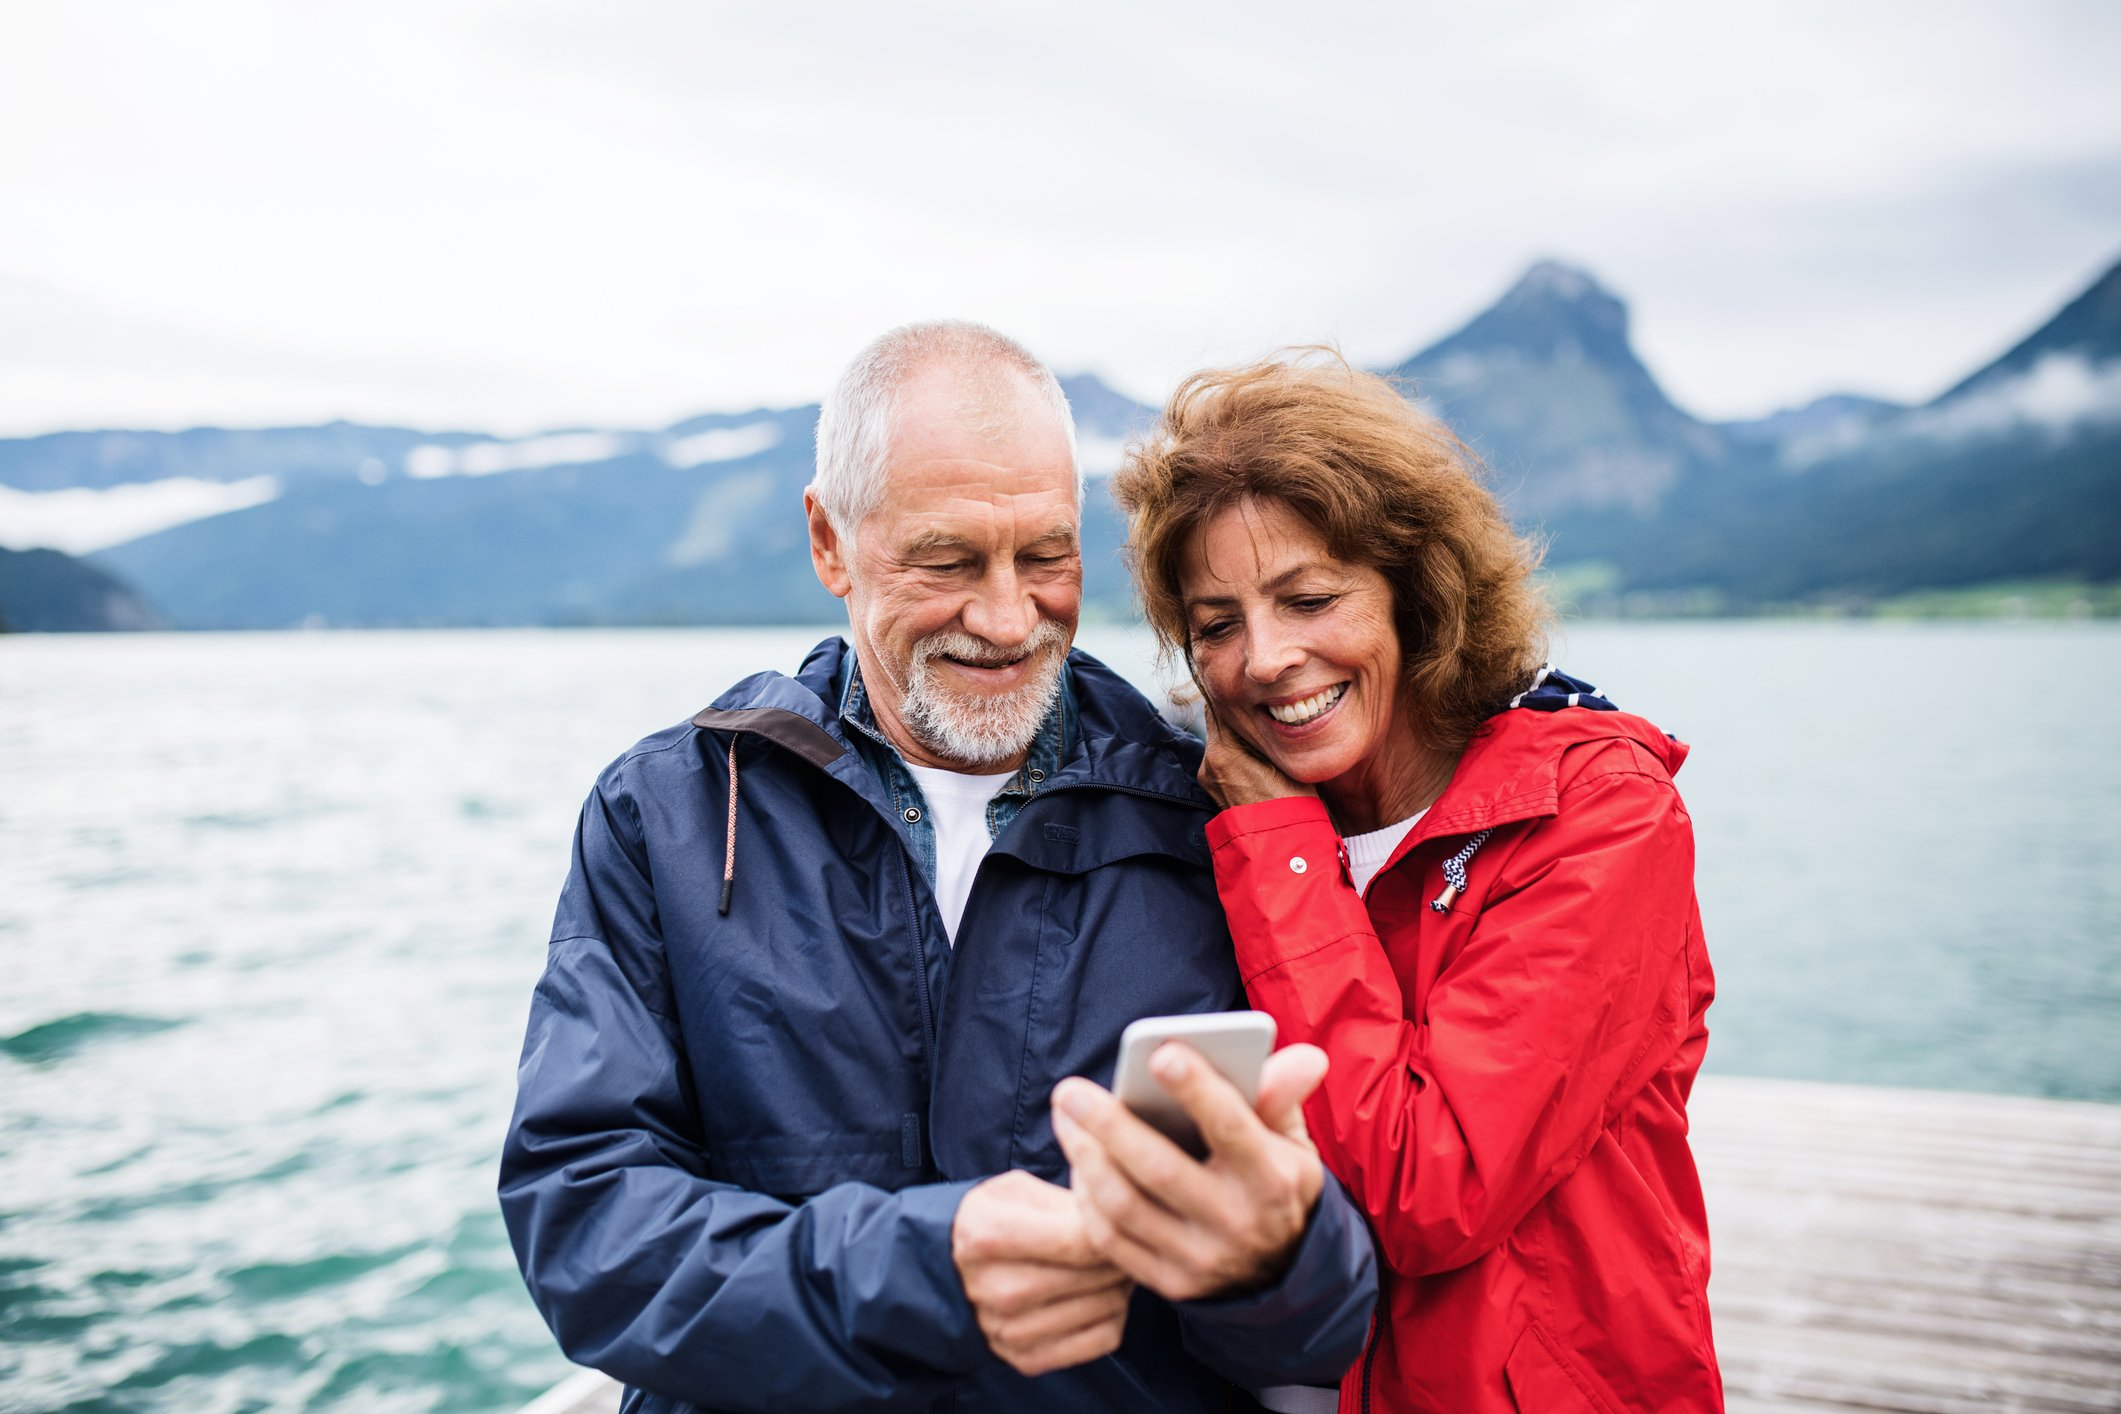 Un couple au bord d'un lac regardant un smartphone. | Photo : Getty Images